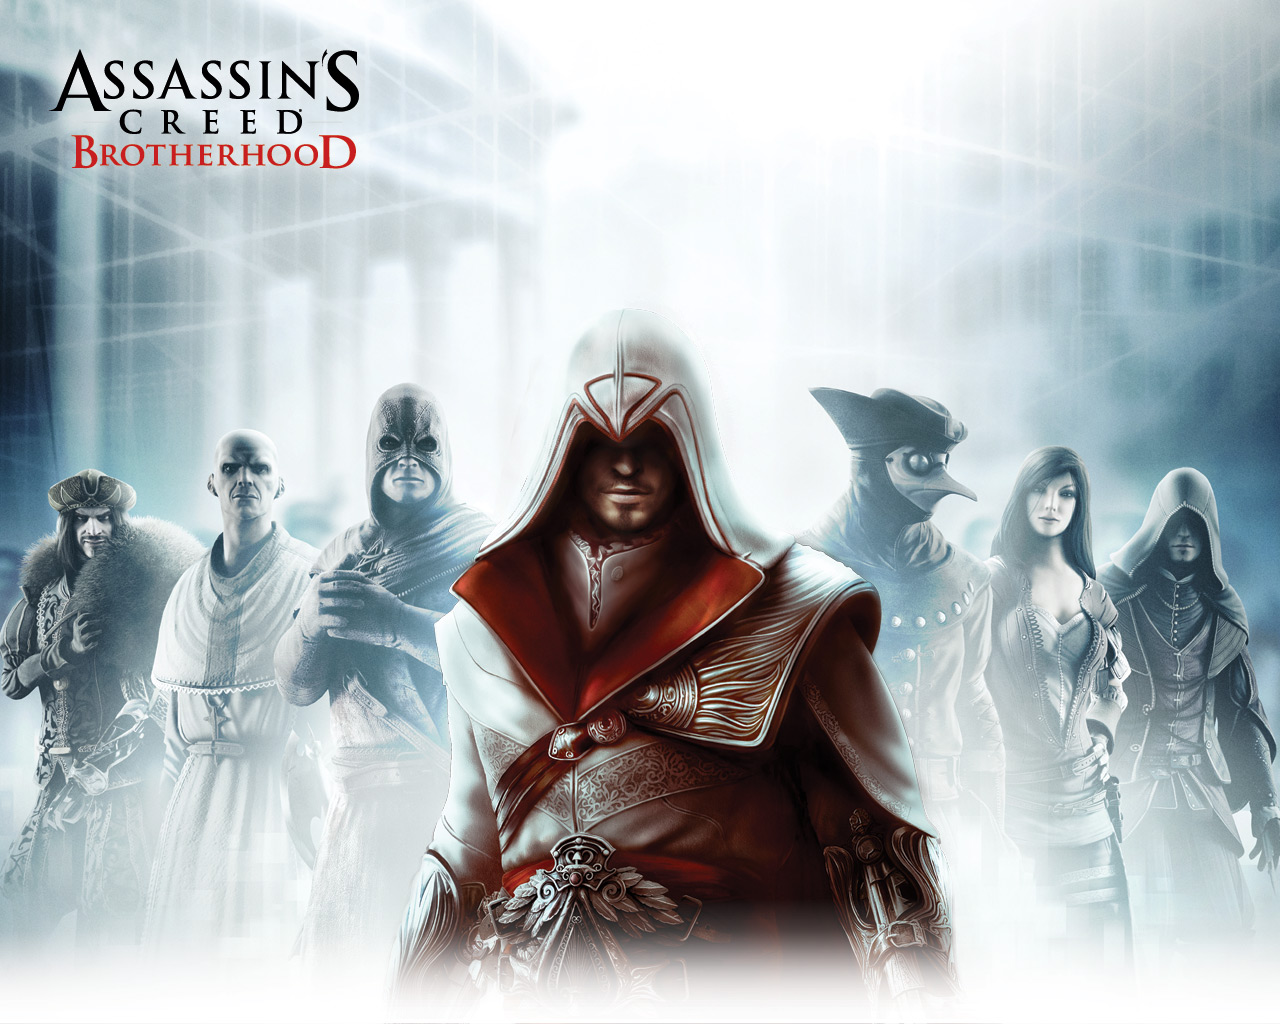 Арт к игре Assassin's Creed: Brotherhood